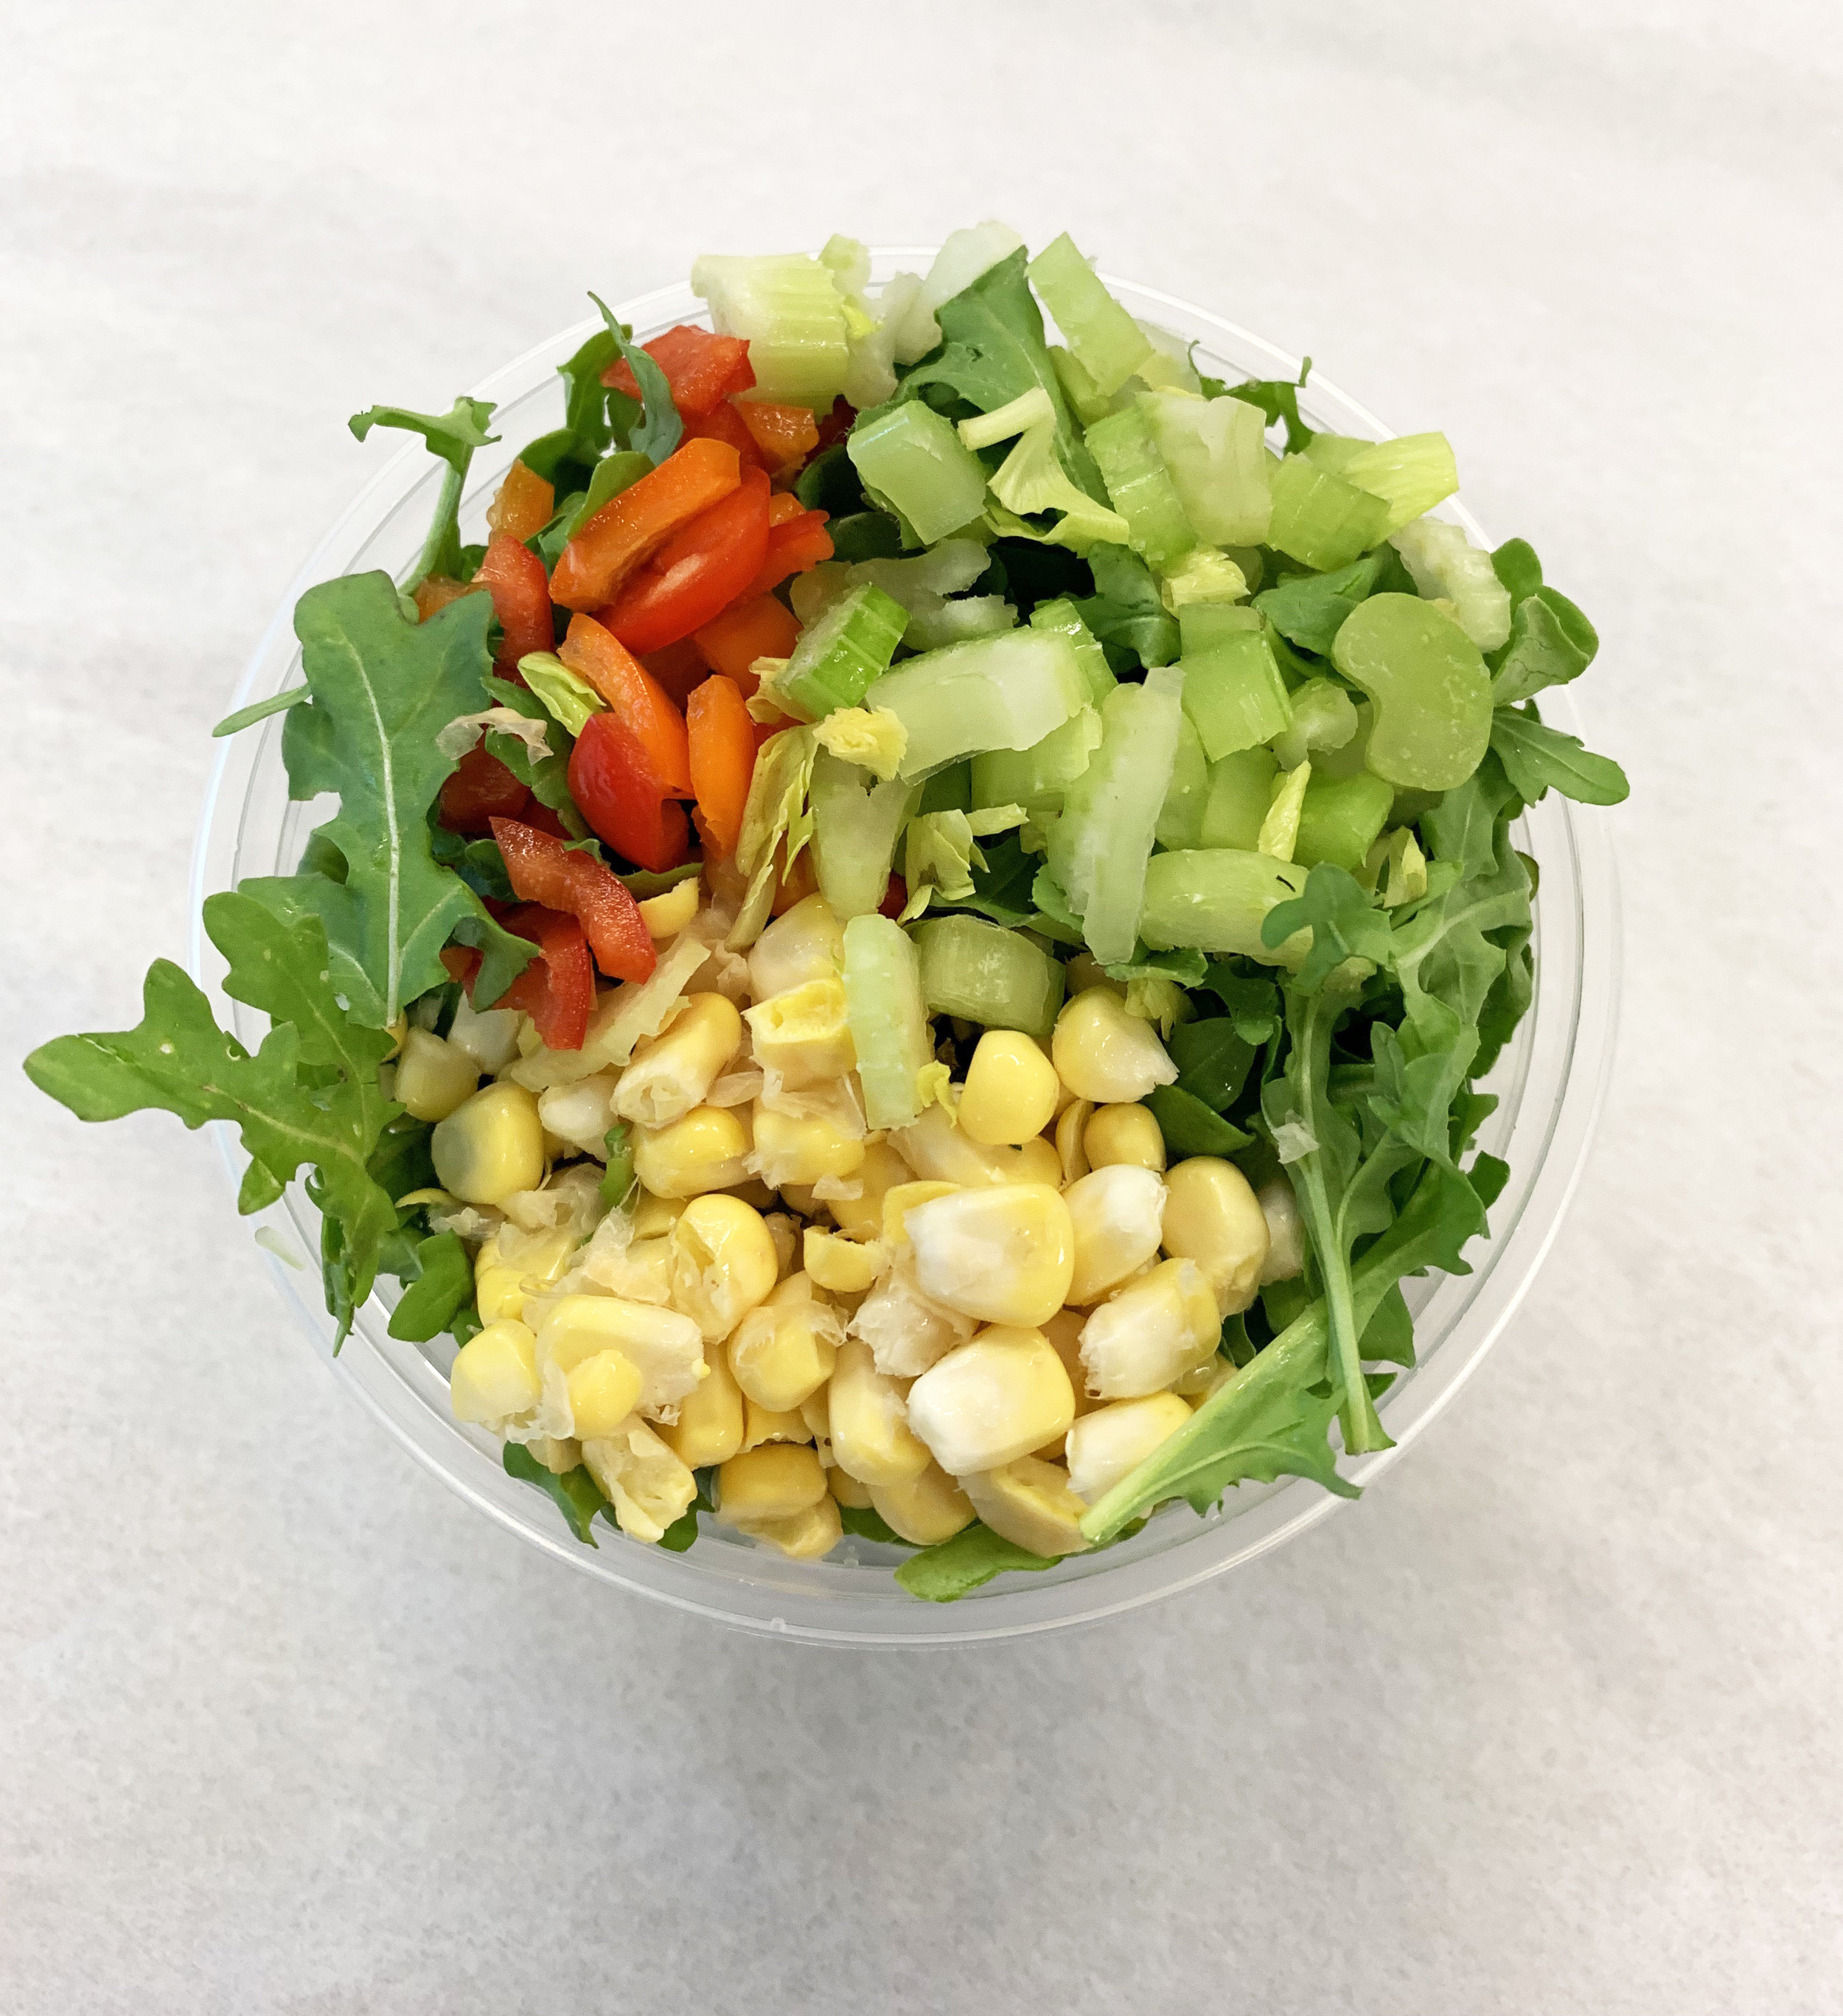 Arugula, fresh corn off the cob, red bell pepper and celery.